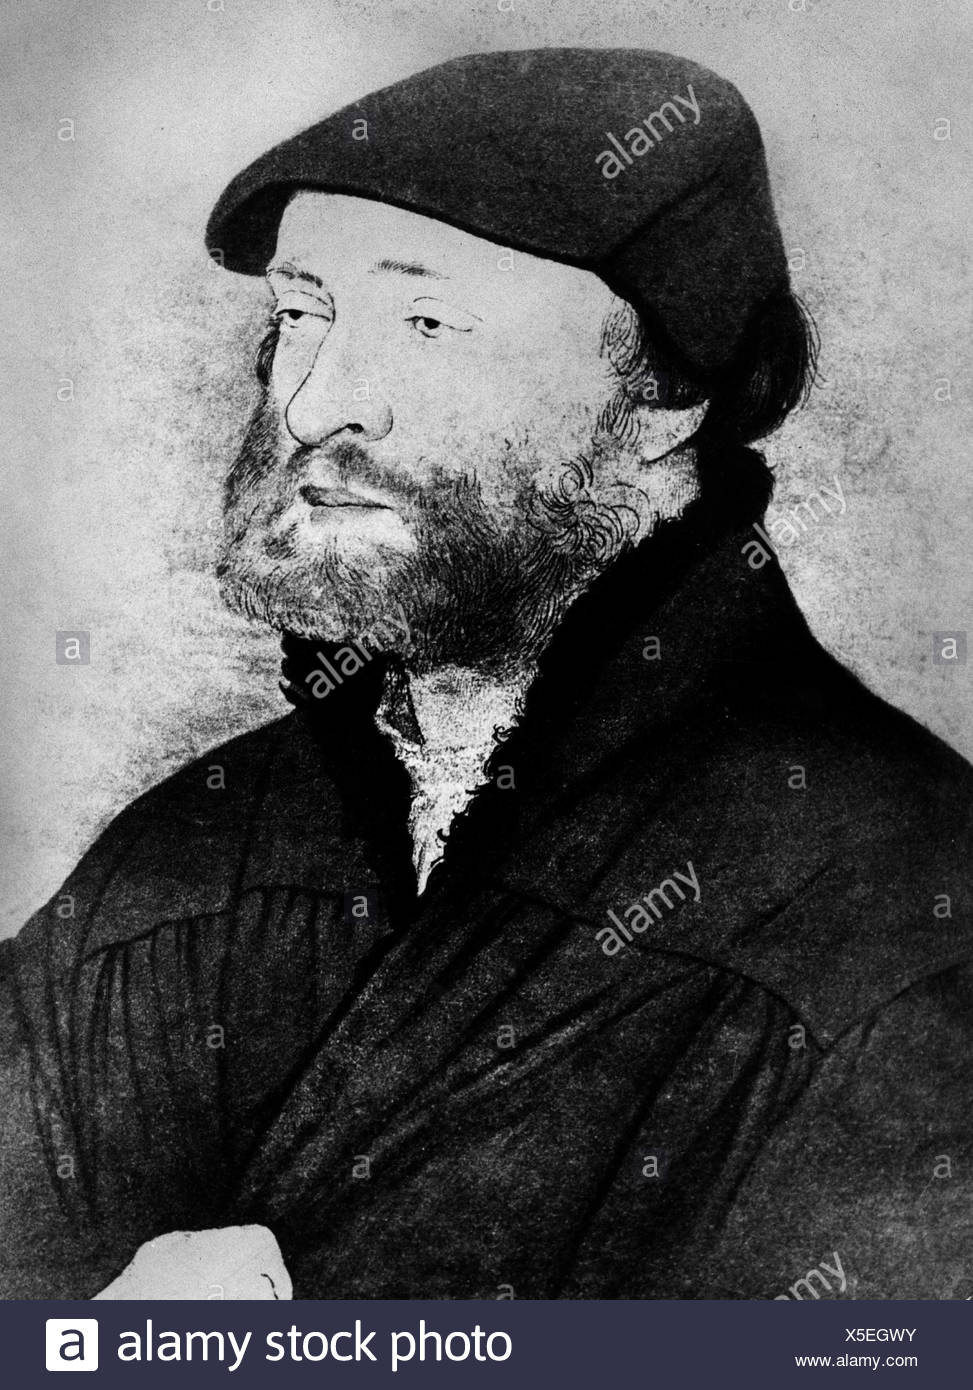 Holbein, Hans, the Younger, 1497 - 29.11.1543, German artist (painter and draughtsman), self-portrait, in the age of 40 years, Additional-Rights-Clearances-NA - Stock Image